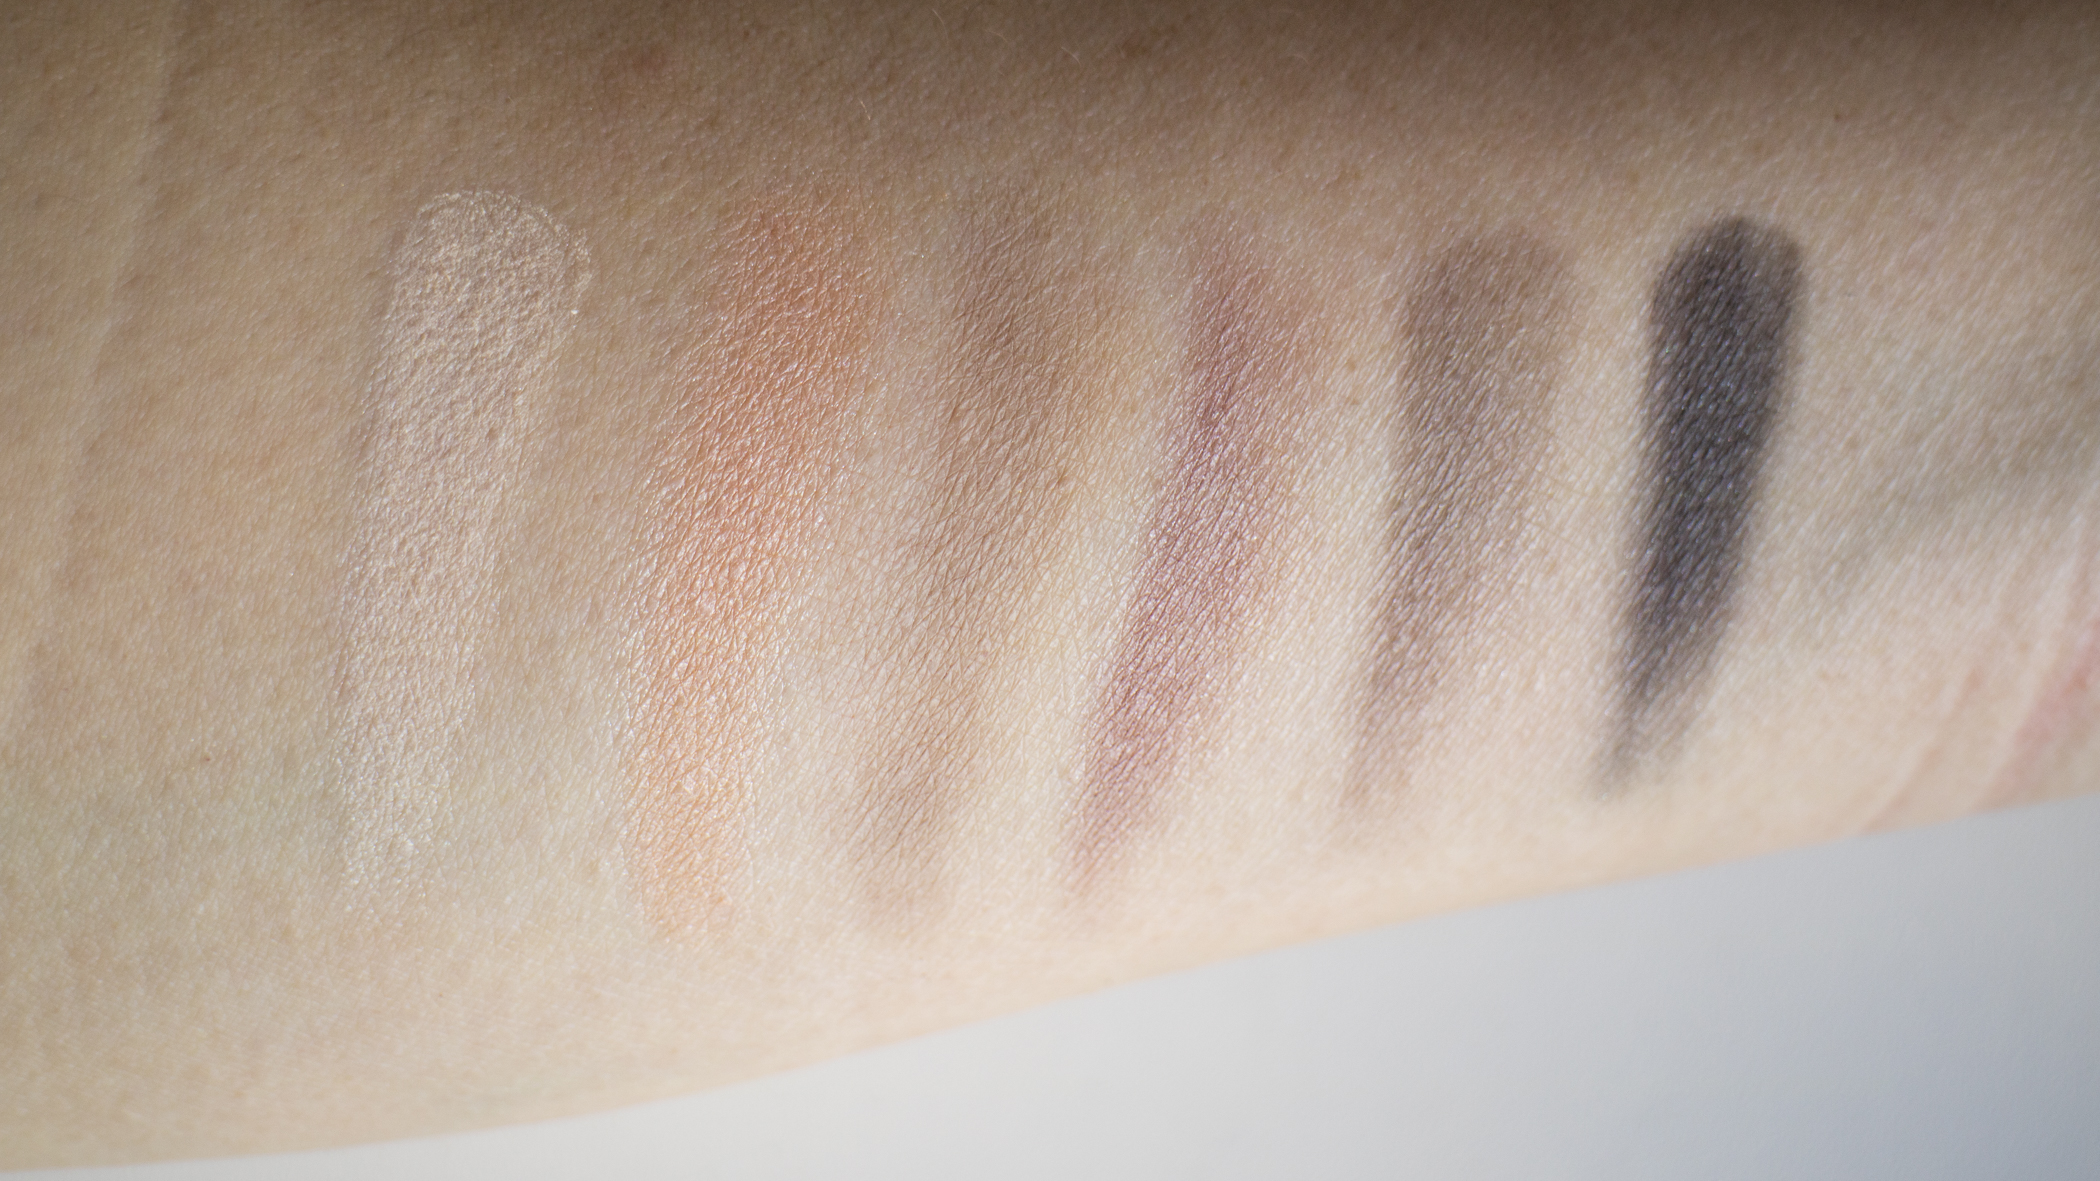 The Legacy Palette Eyeshadow Swatches Bottom Row (From L to R): Beige, Peach, Light Grey, Pewter, Espresso, Black